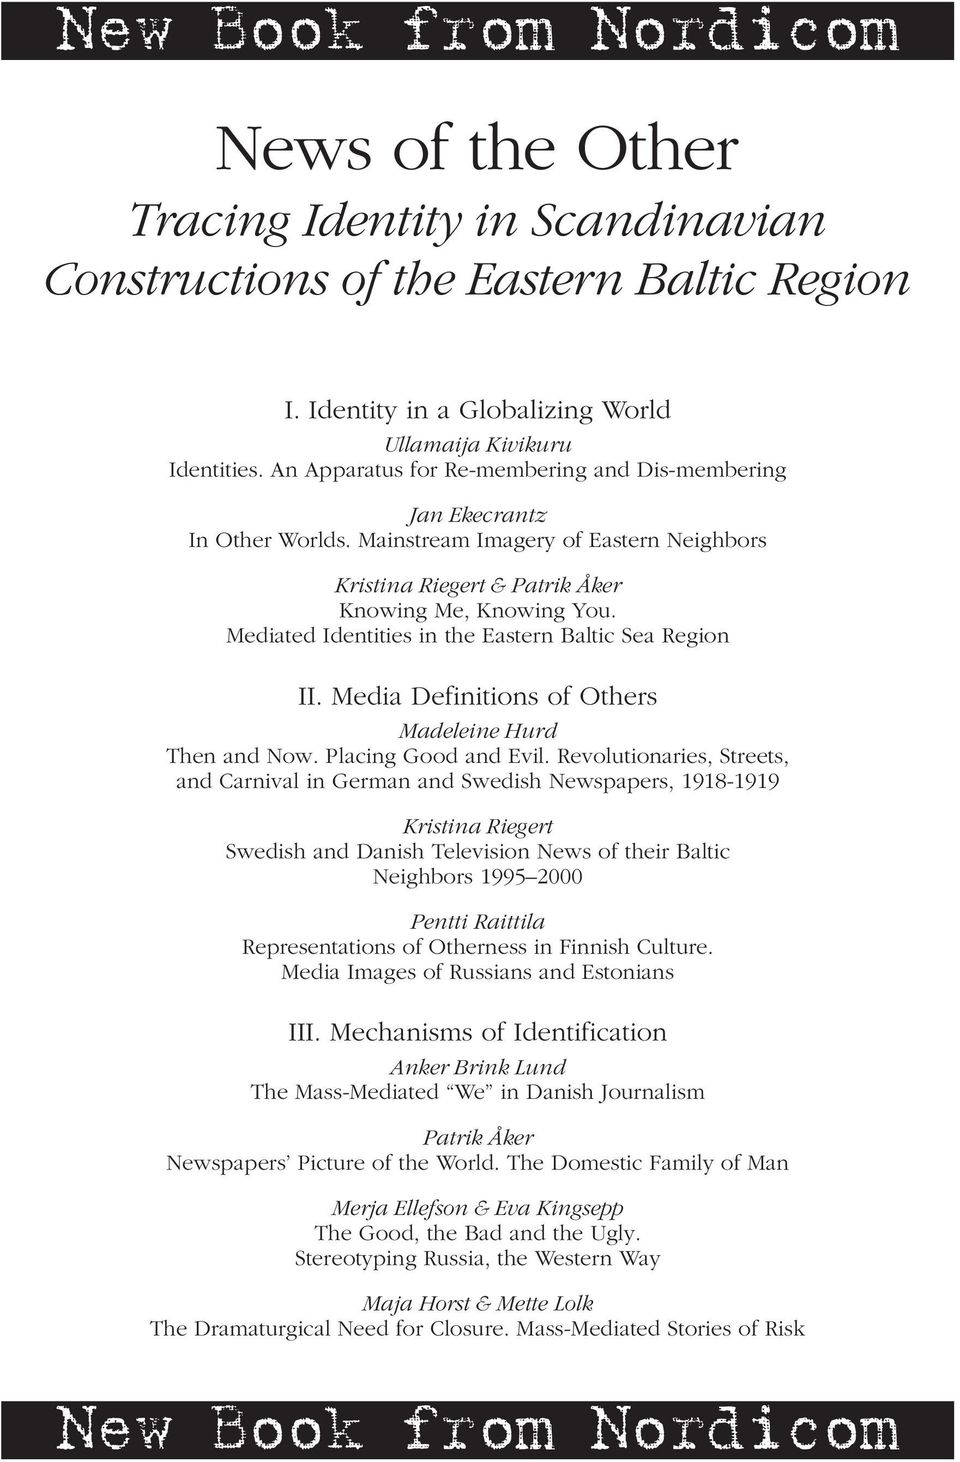 Mediated Identities in the Eastern Baltic Sea Region II. Media Definitions of Others Madeleine Hurd Then and Now. Placing Good and Evil.